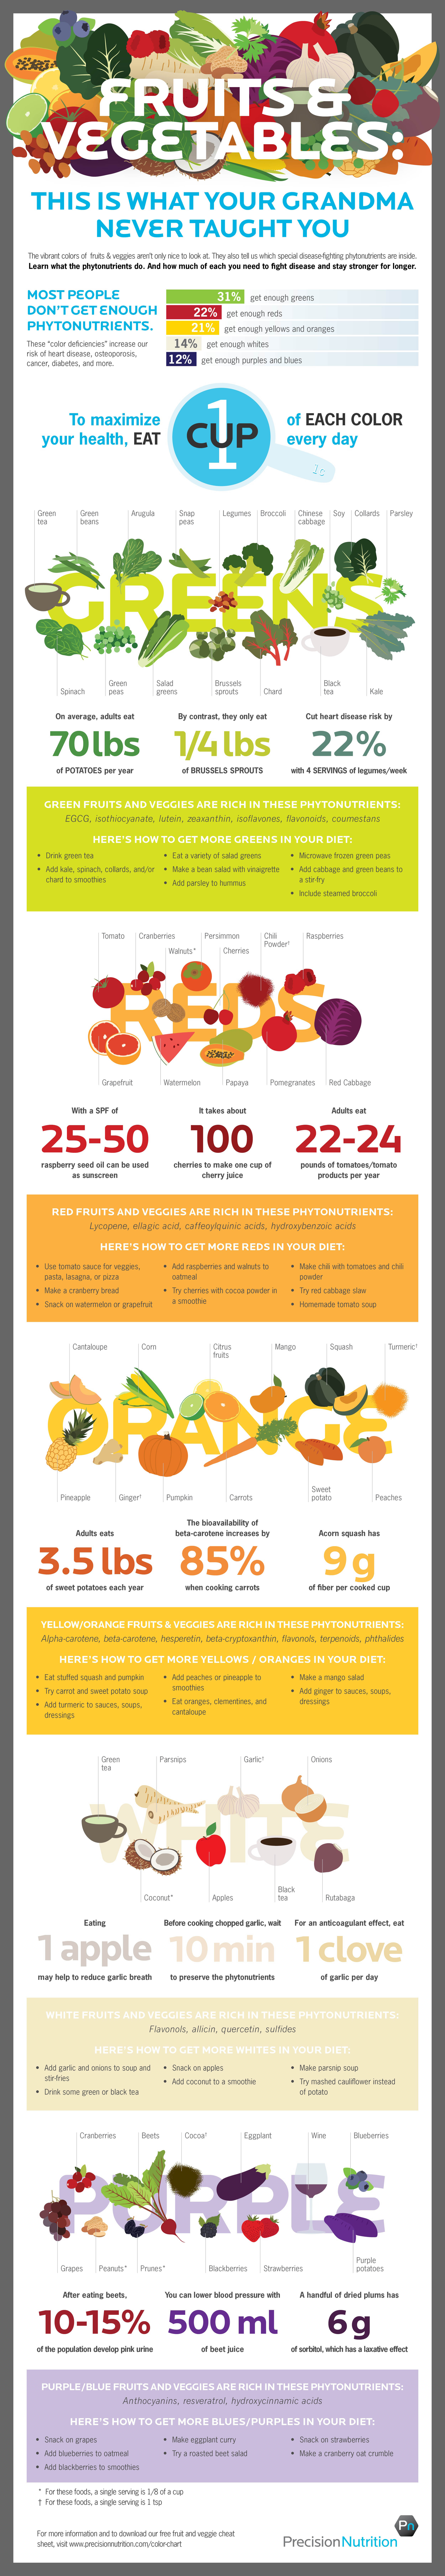 Fruit and Vegetable Infographic This Infographic Shows the Phytonutrients You Need to Stay Healthy